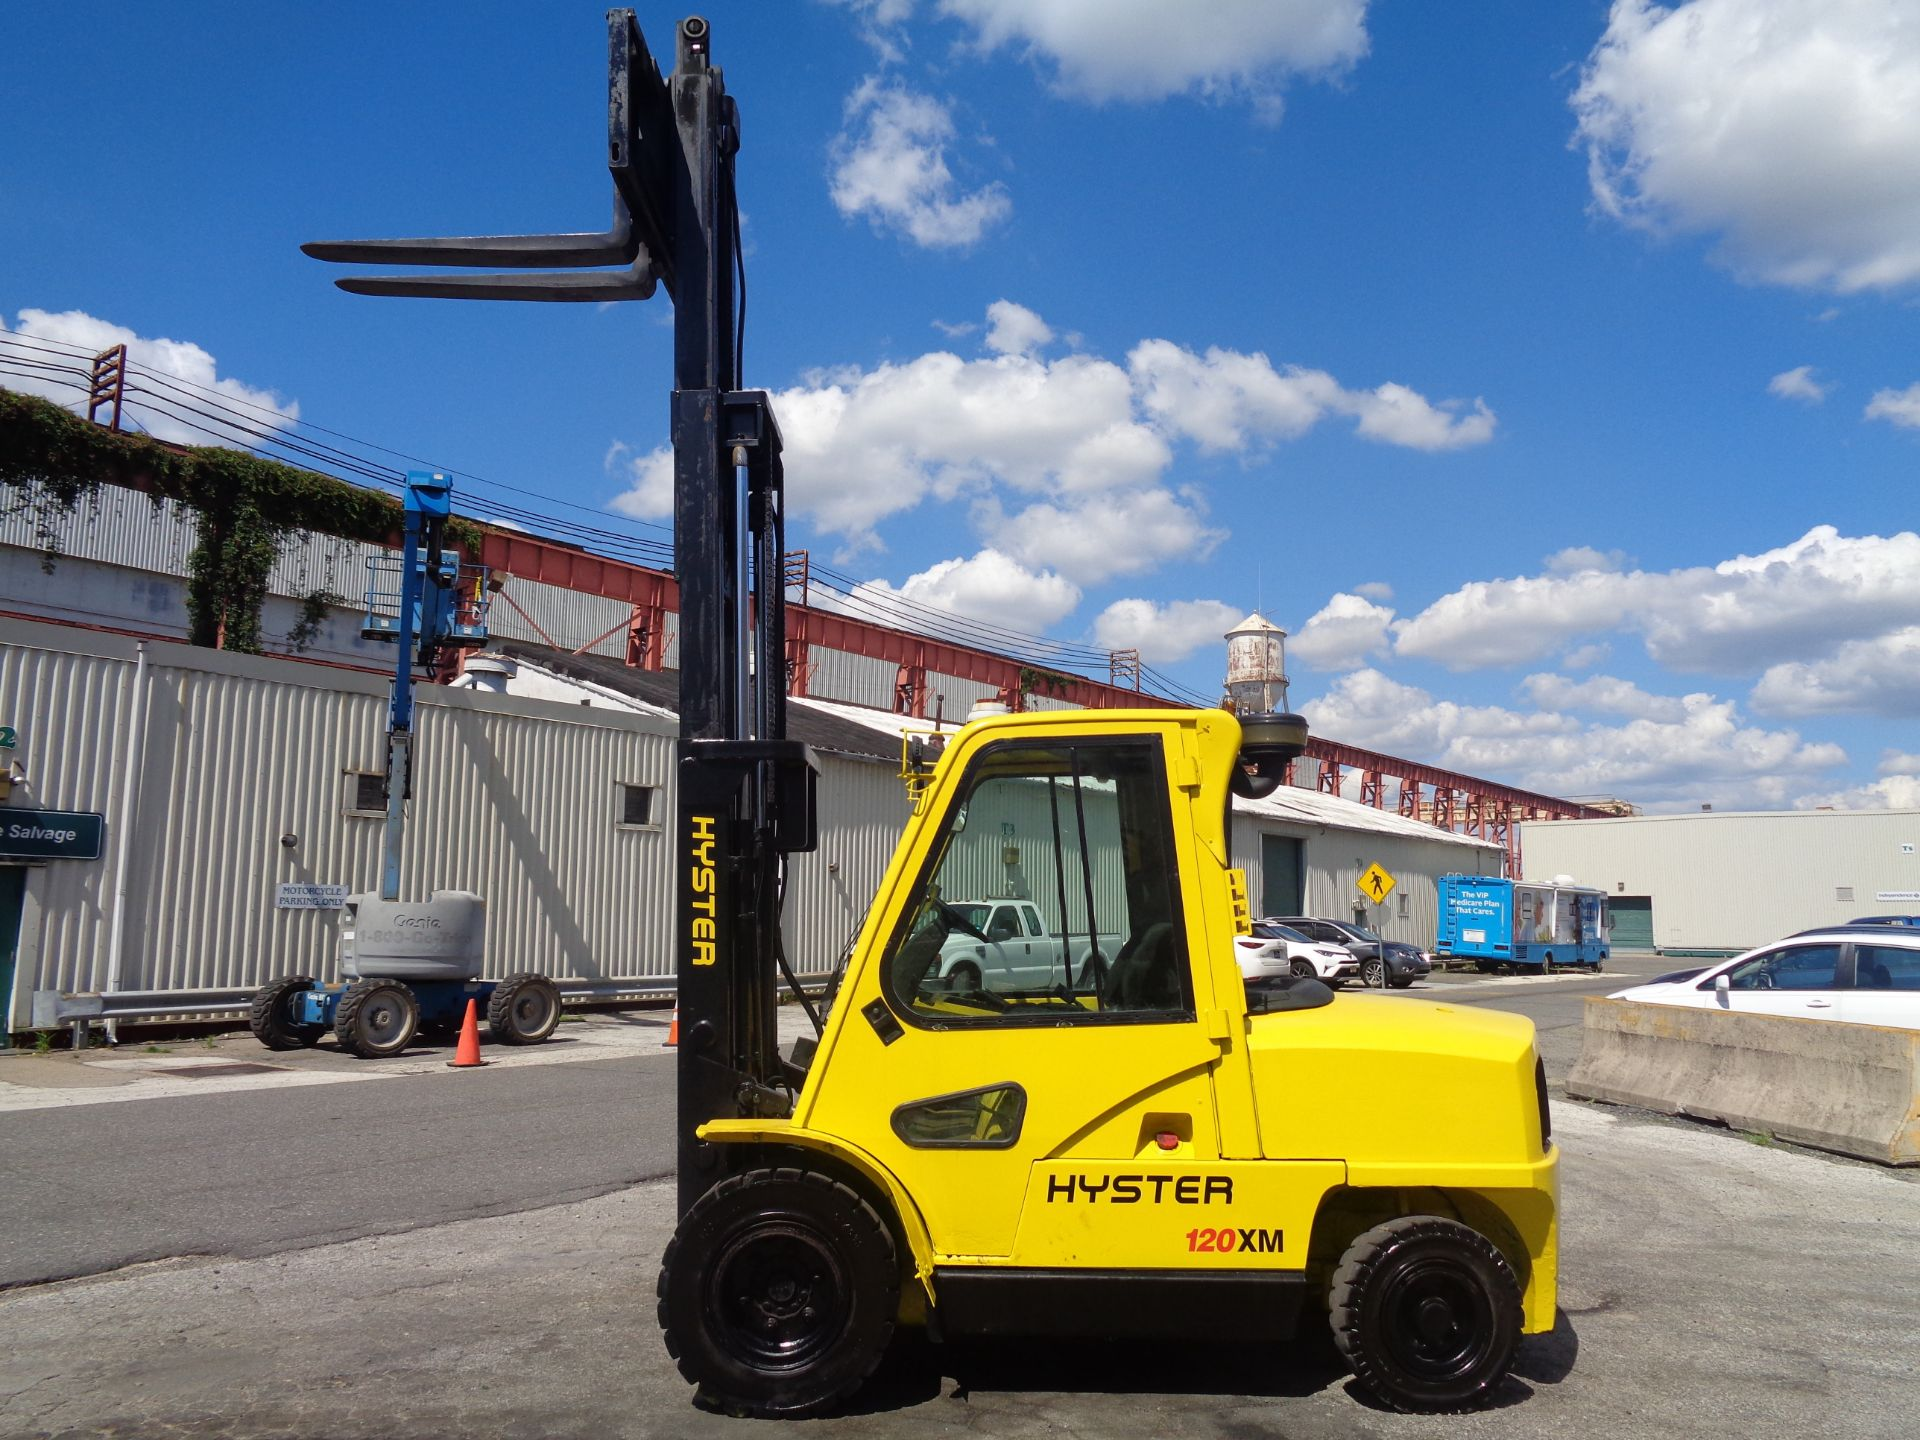 Hyster H120XL 12,000lb Forklift - Image 13 of 15